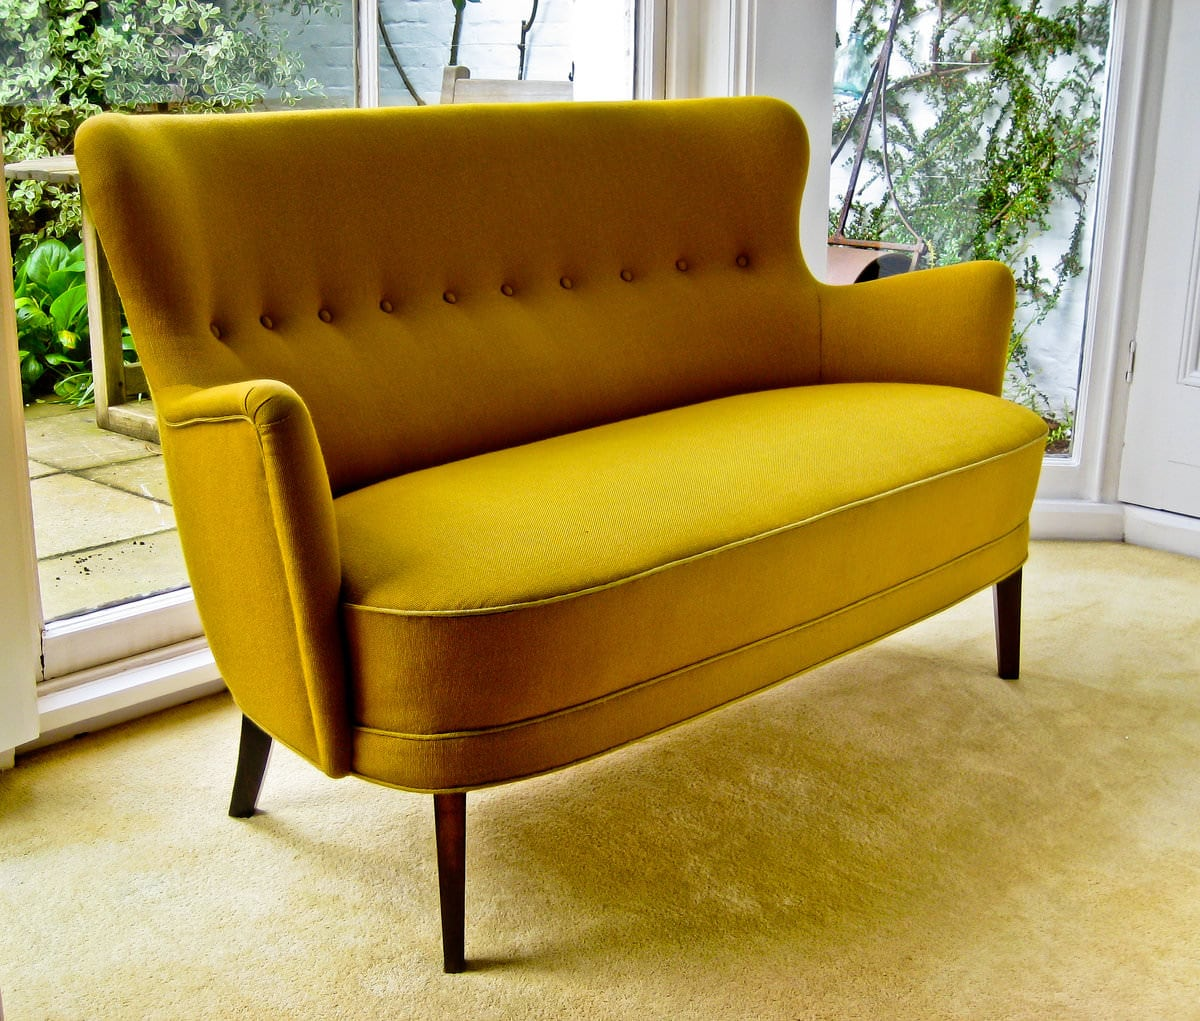 Mid century Danish design sofa in yellow wool 1950's